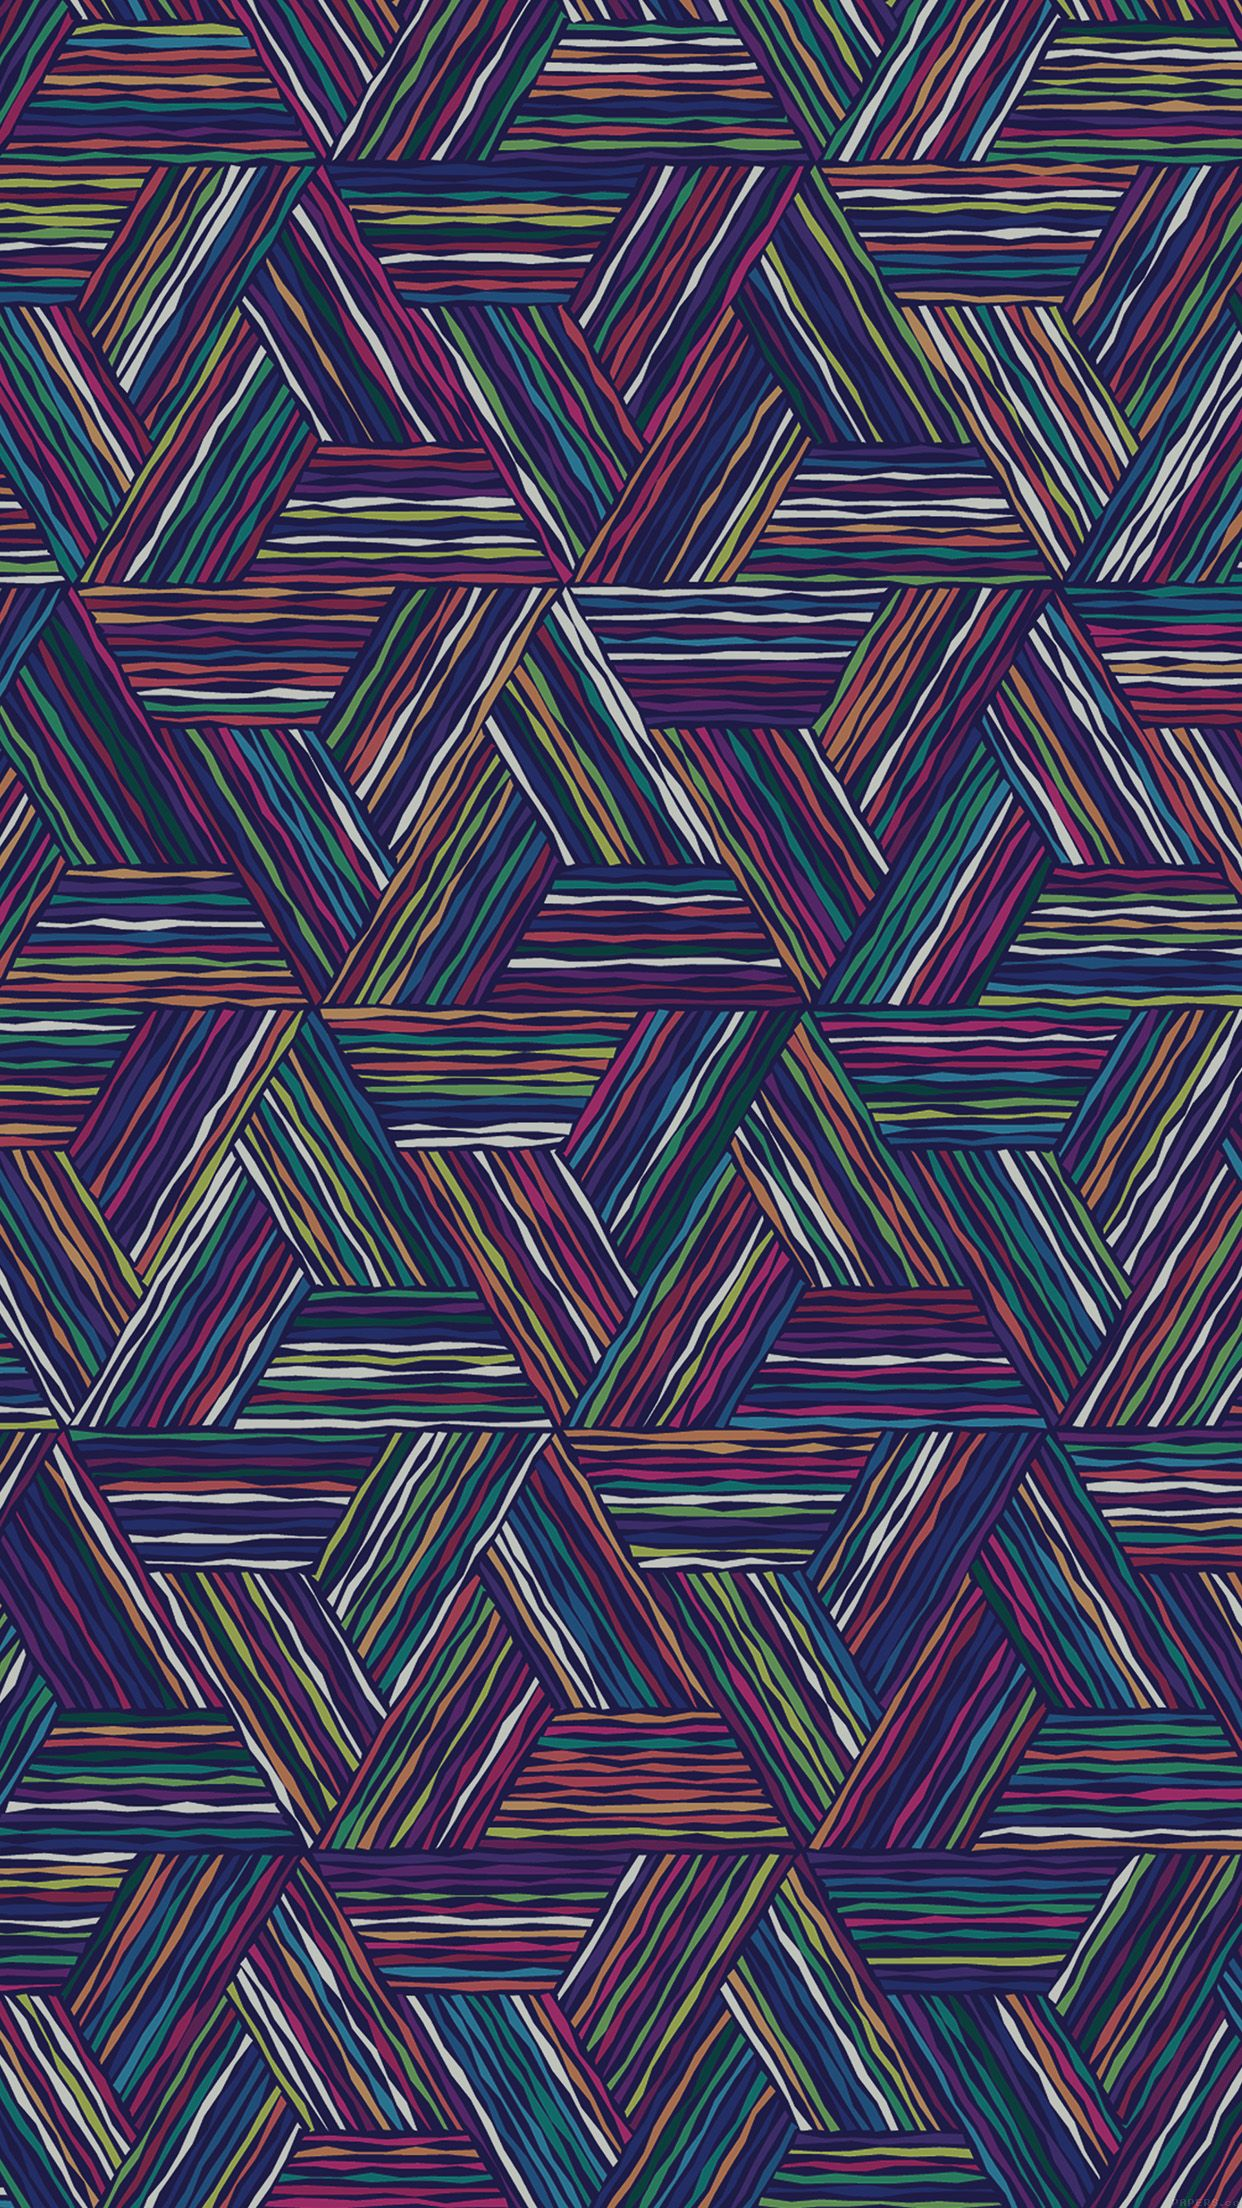 Triangle Colored Lines Digital Art Pattern Iphone 6 Plus Hd